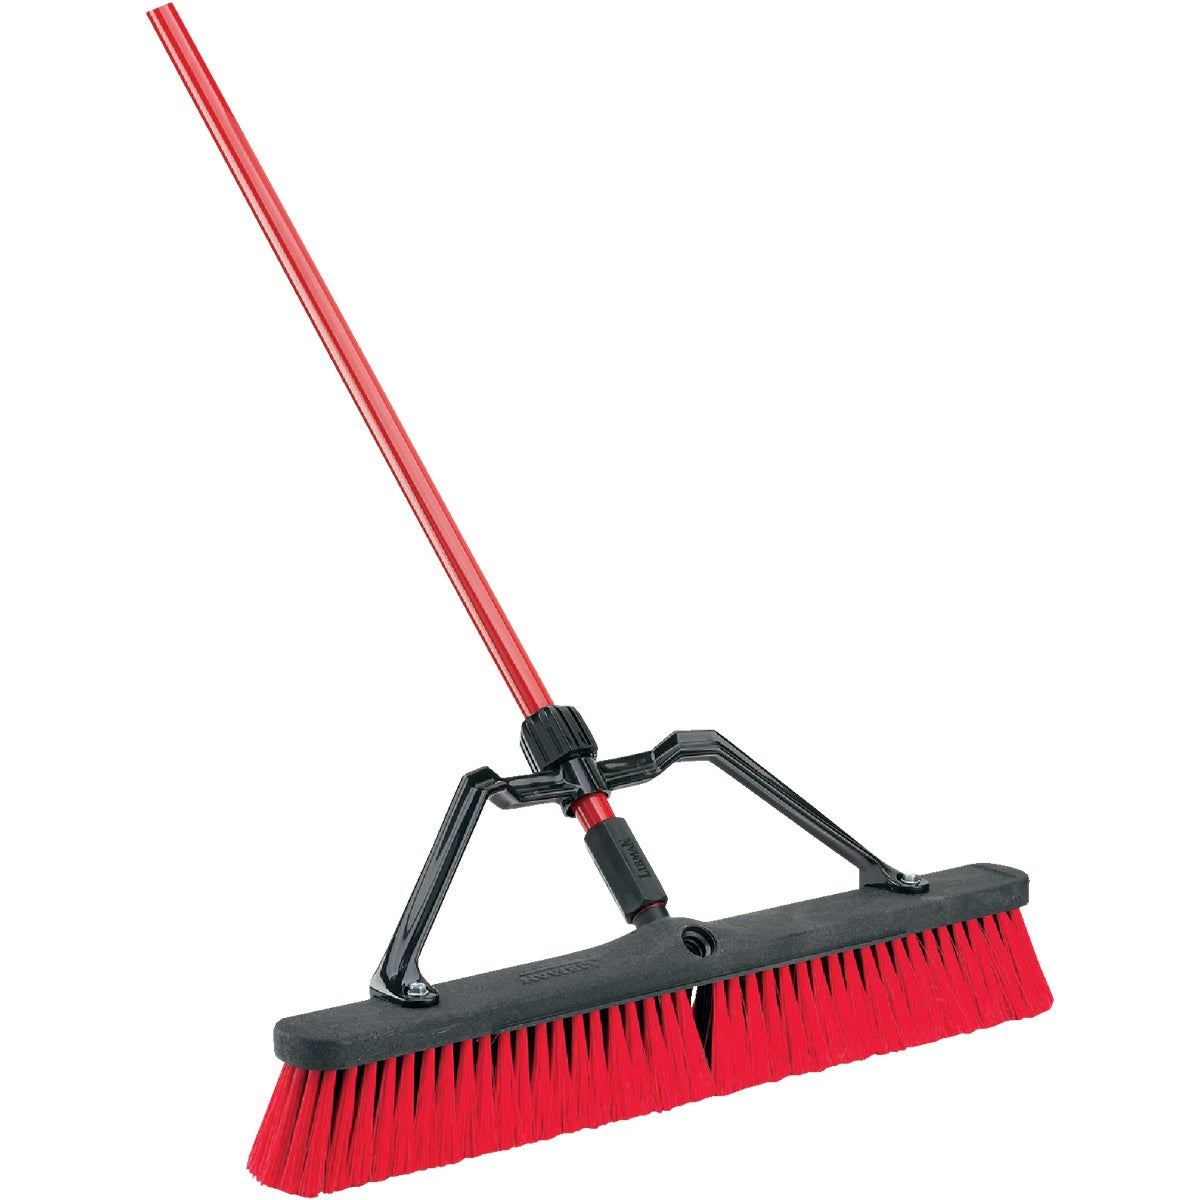 "24"" PUSH BROOM - 123223 by F H P-lp"